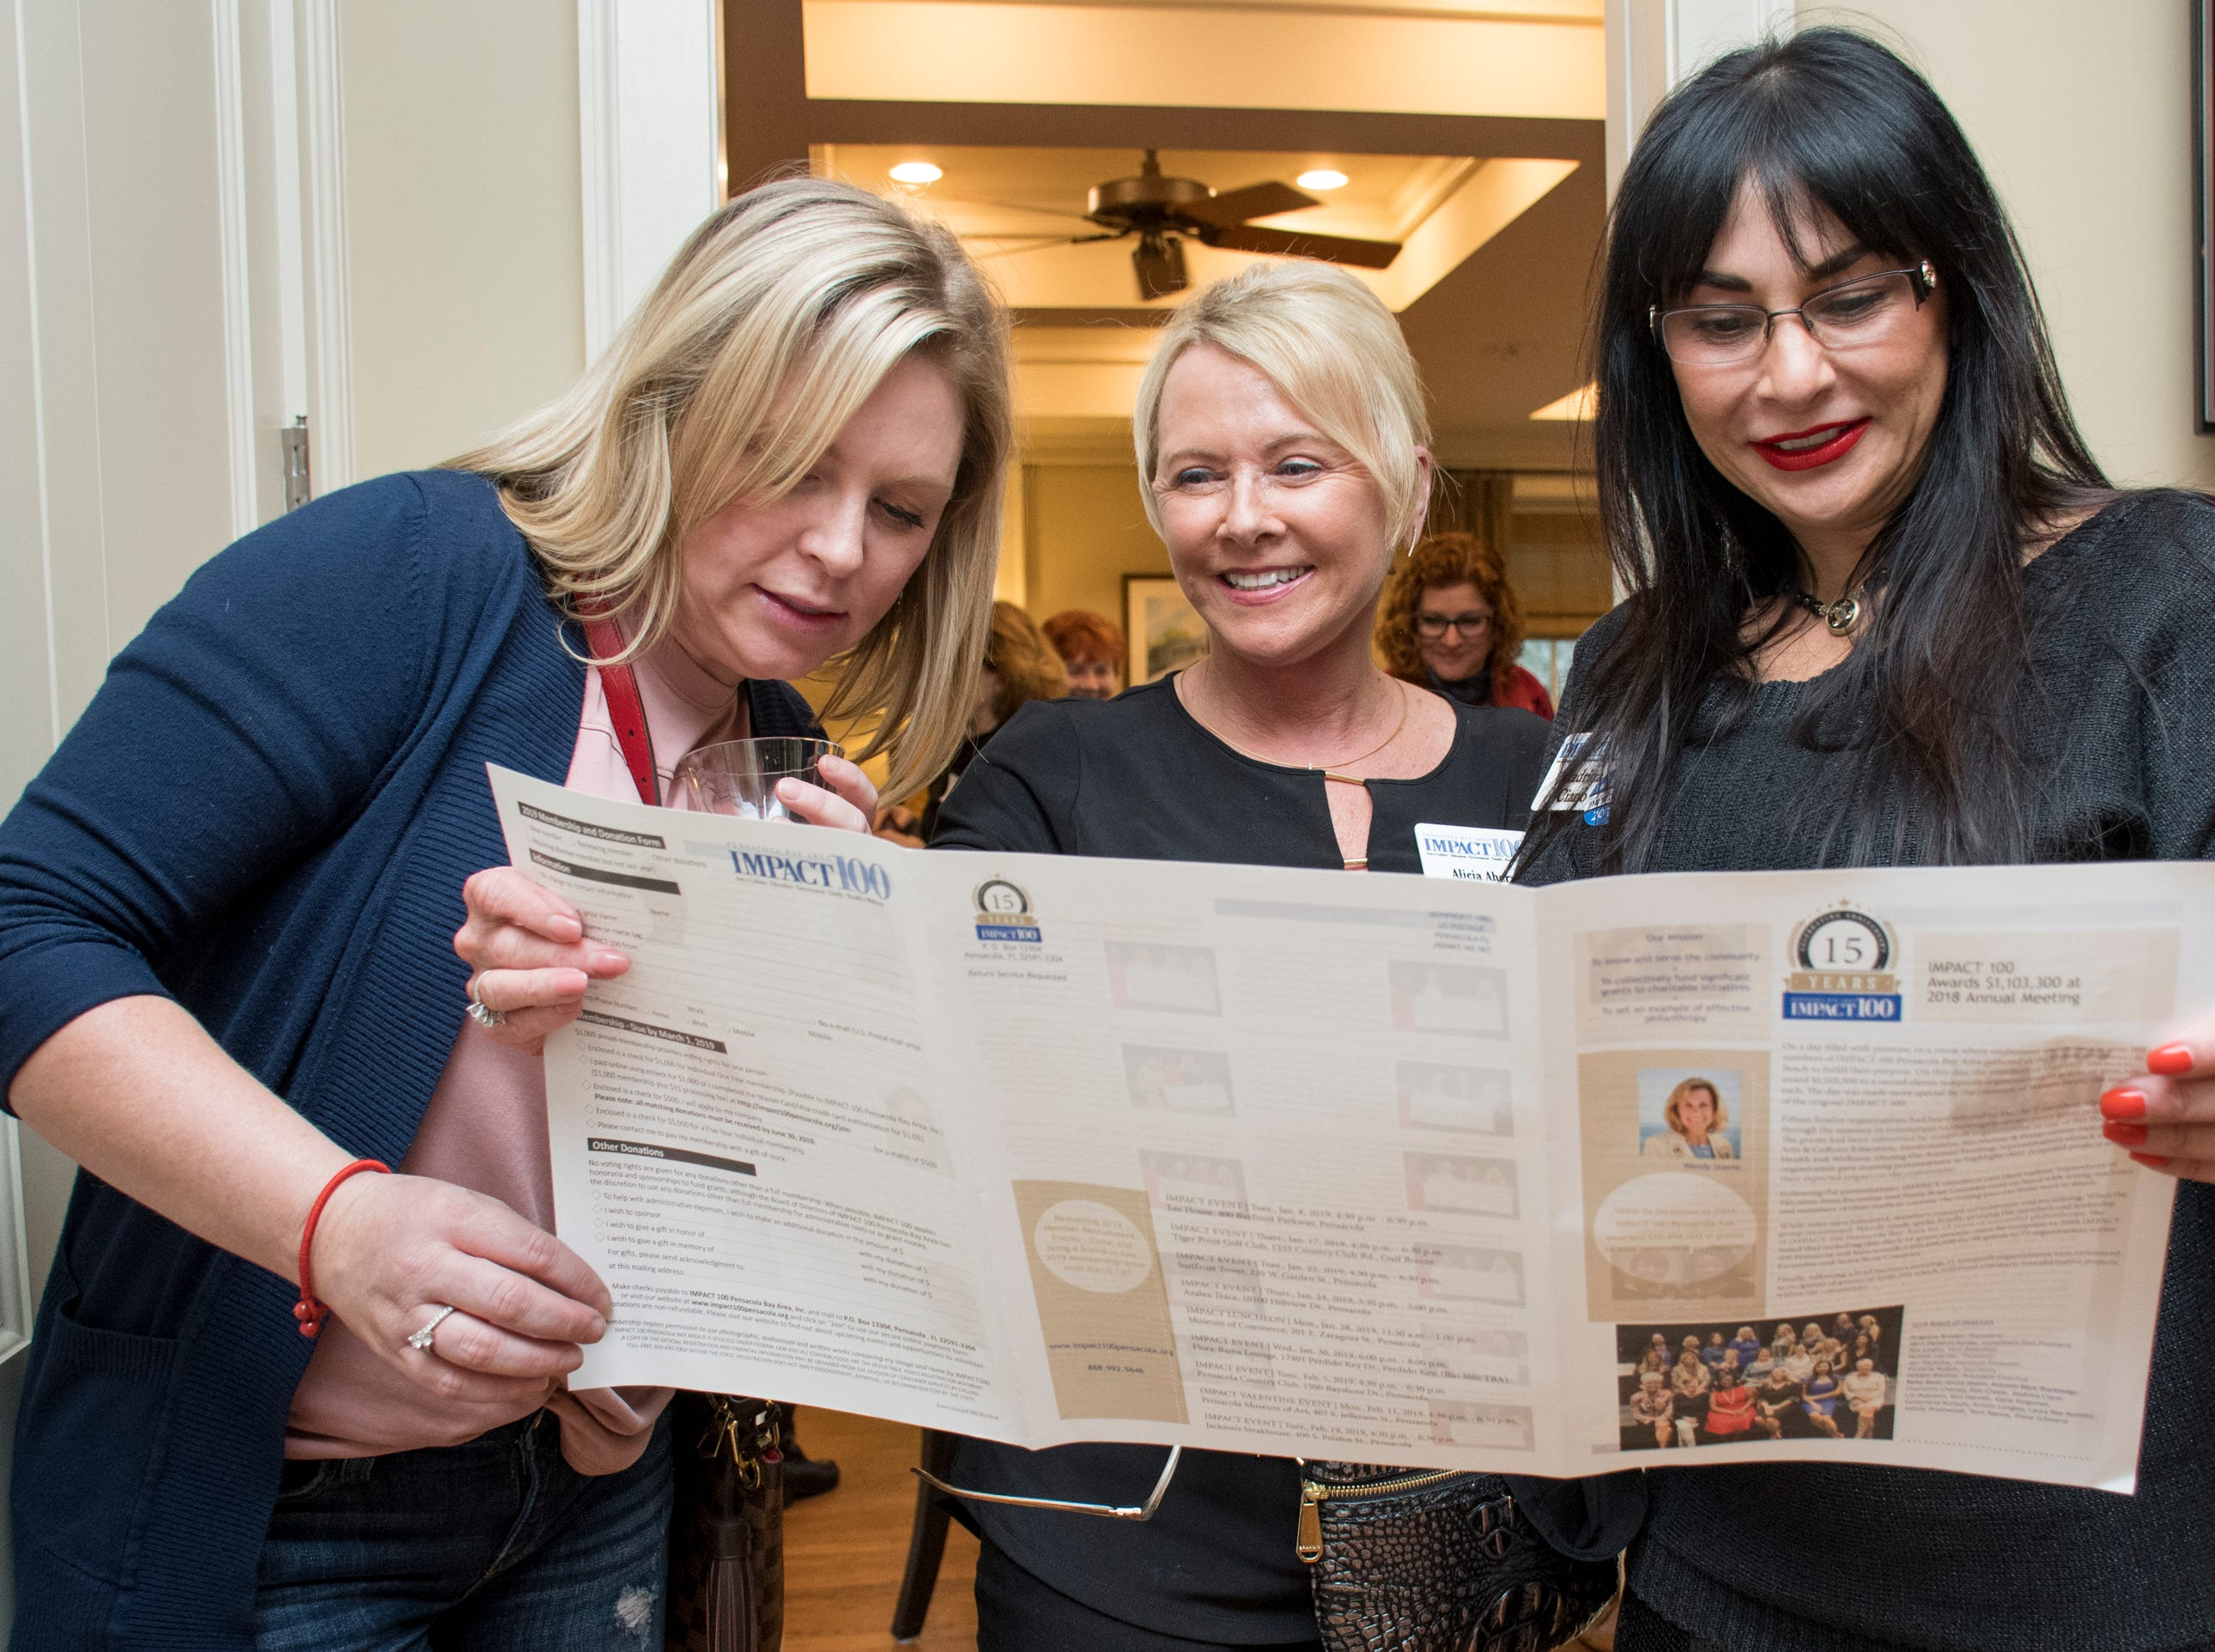 Kellie Hardy, from left, Alicia Ahern, and Madrina Ciano look over a newsletter during the Impact 100 Pensacola Bay Area meeting at the Lee House in Pensacola on Tuesday, January 8, 2019.